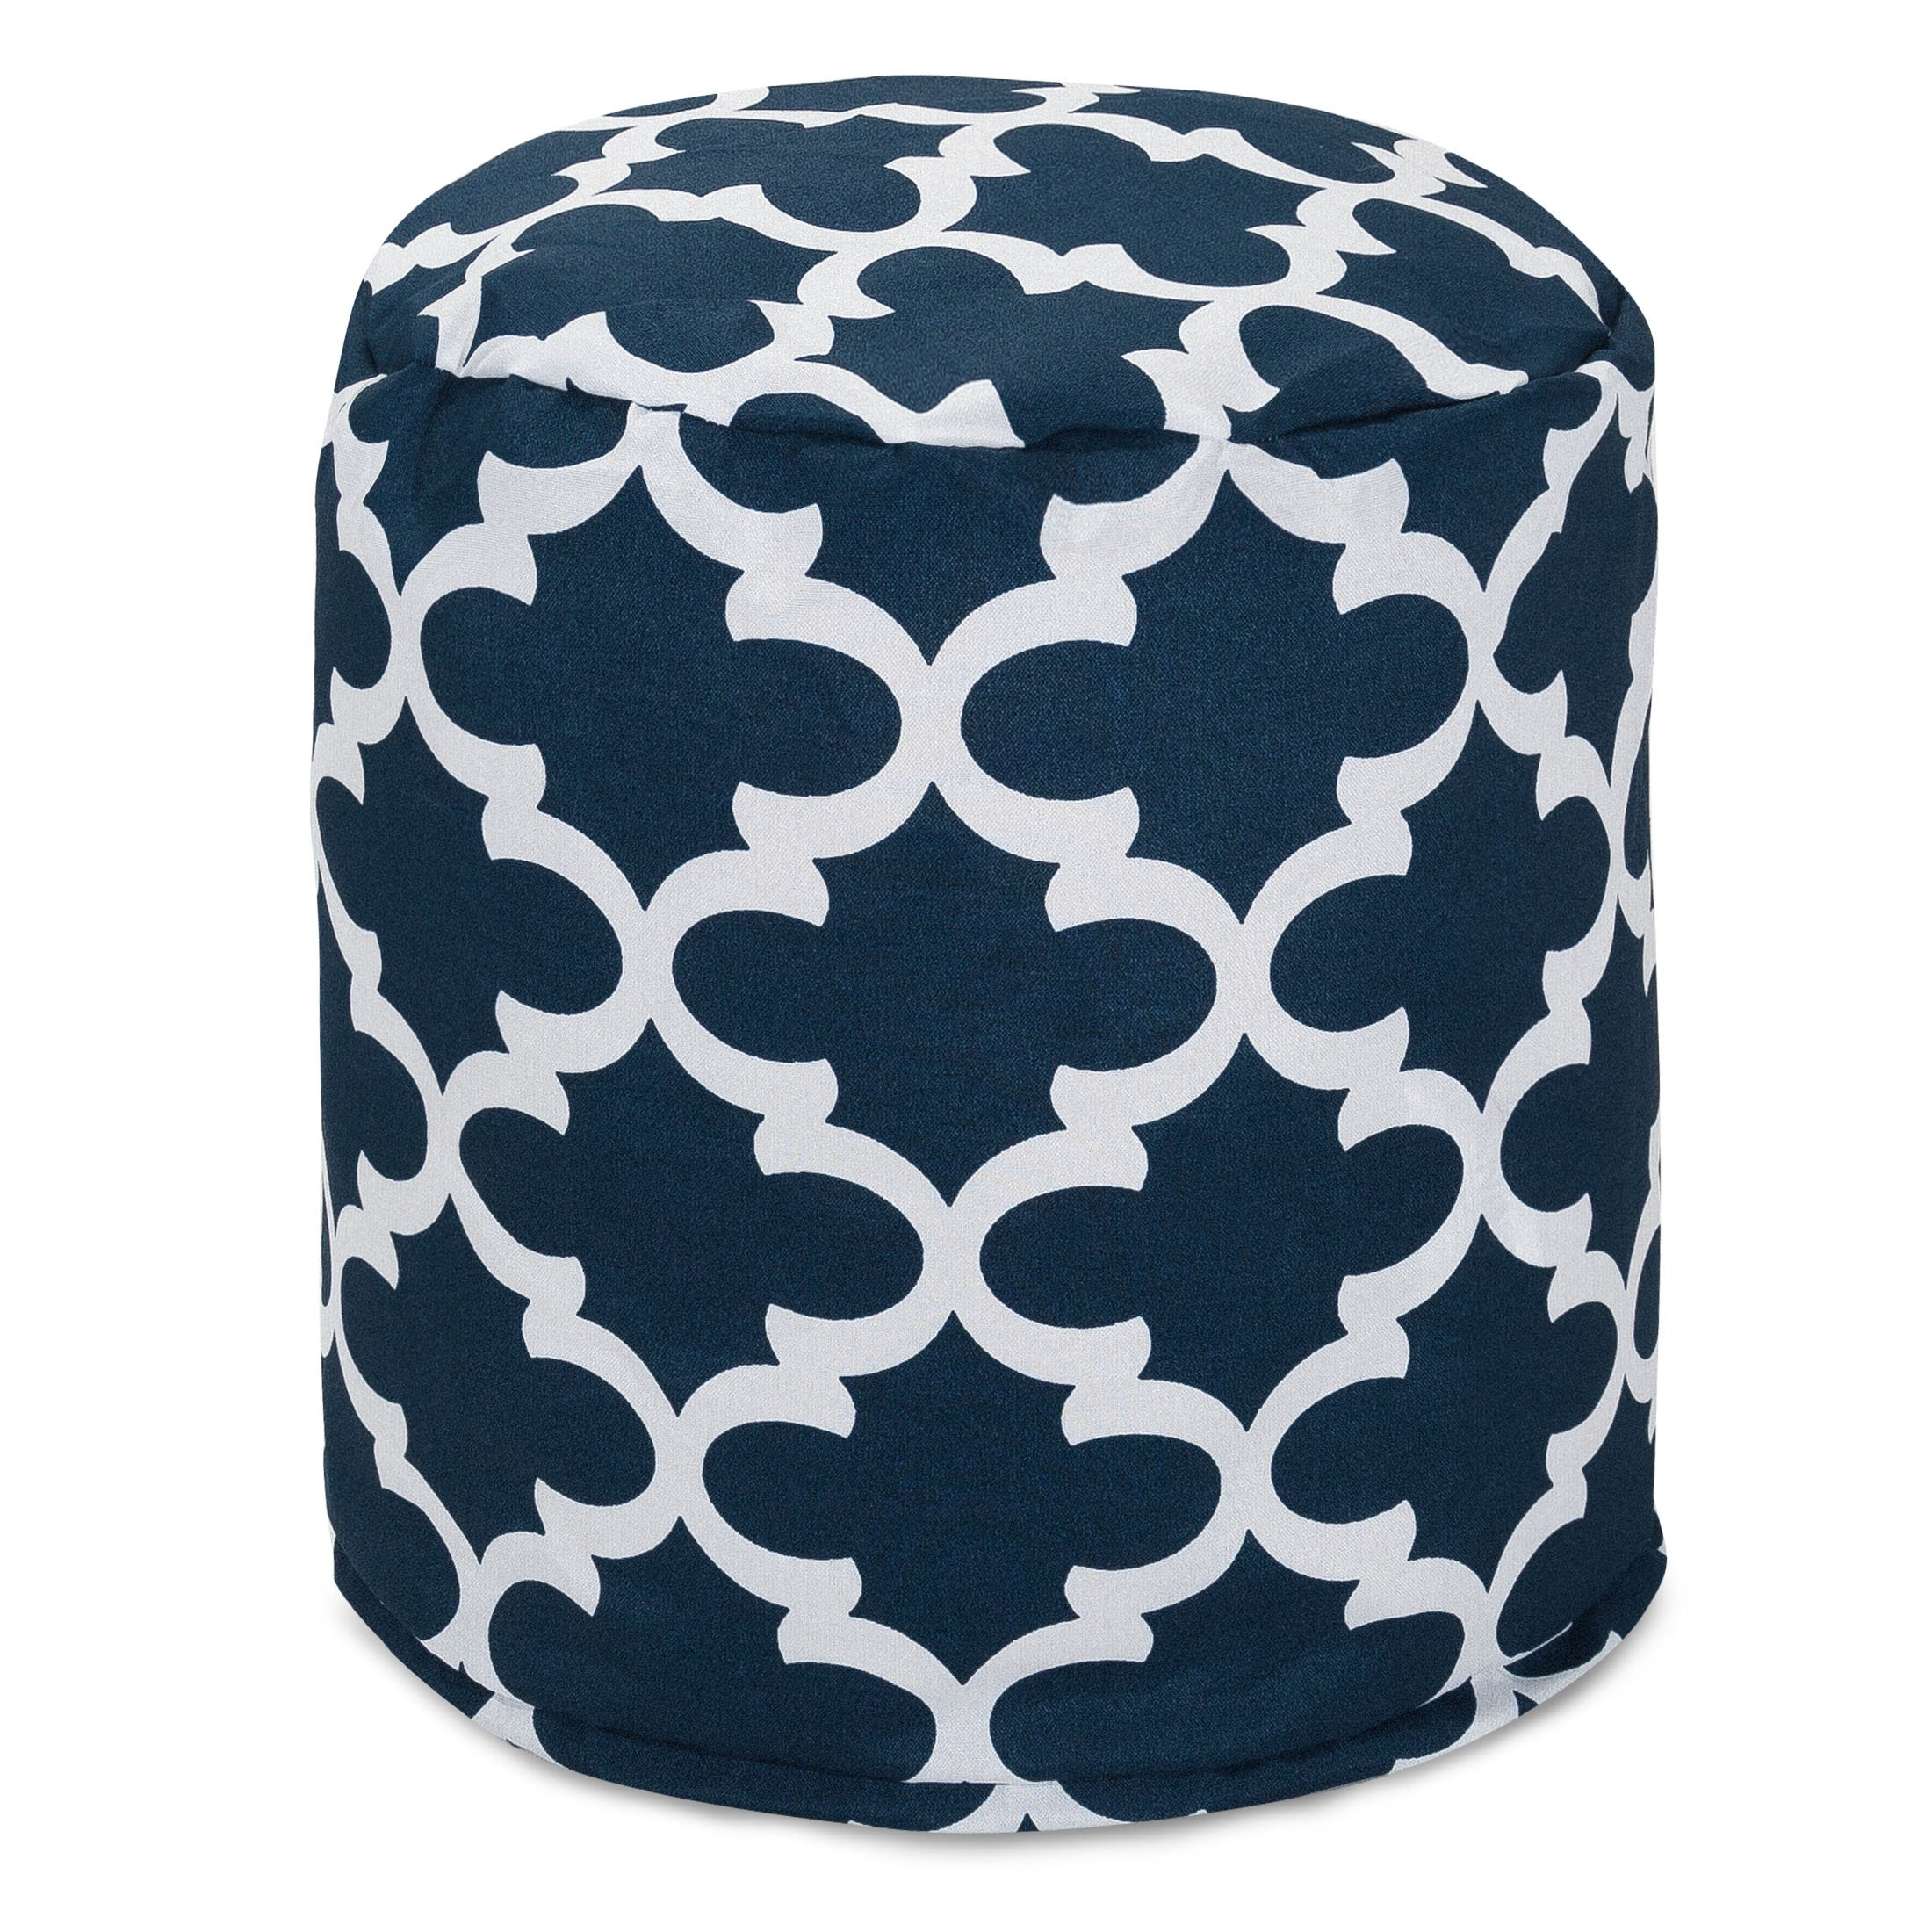 Majestic Home Goods Trellis Pouf, Small, Navy by Majestic Home Goods